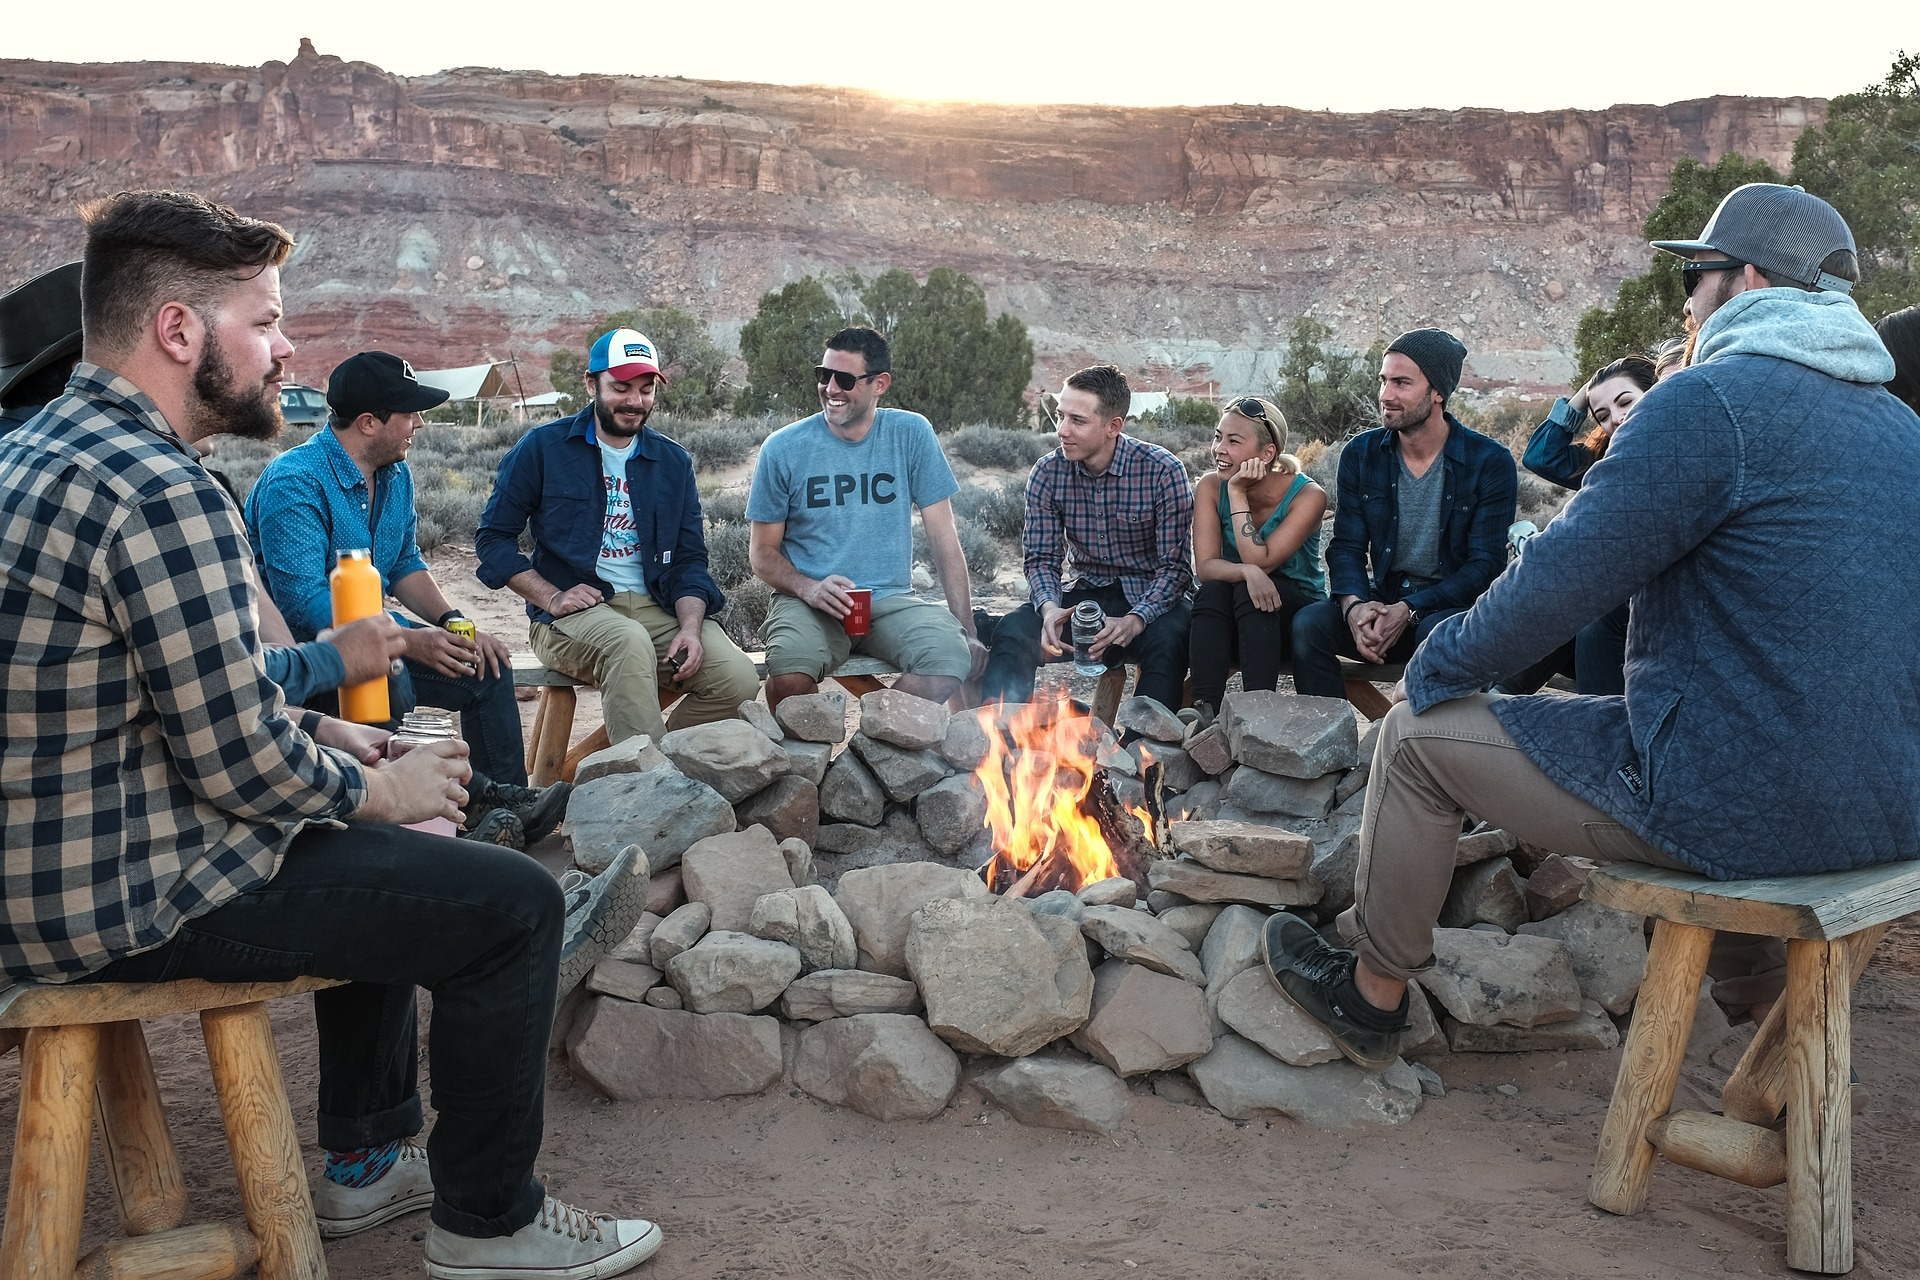 Group of people enjoying their camping together.